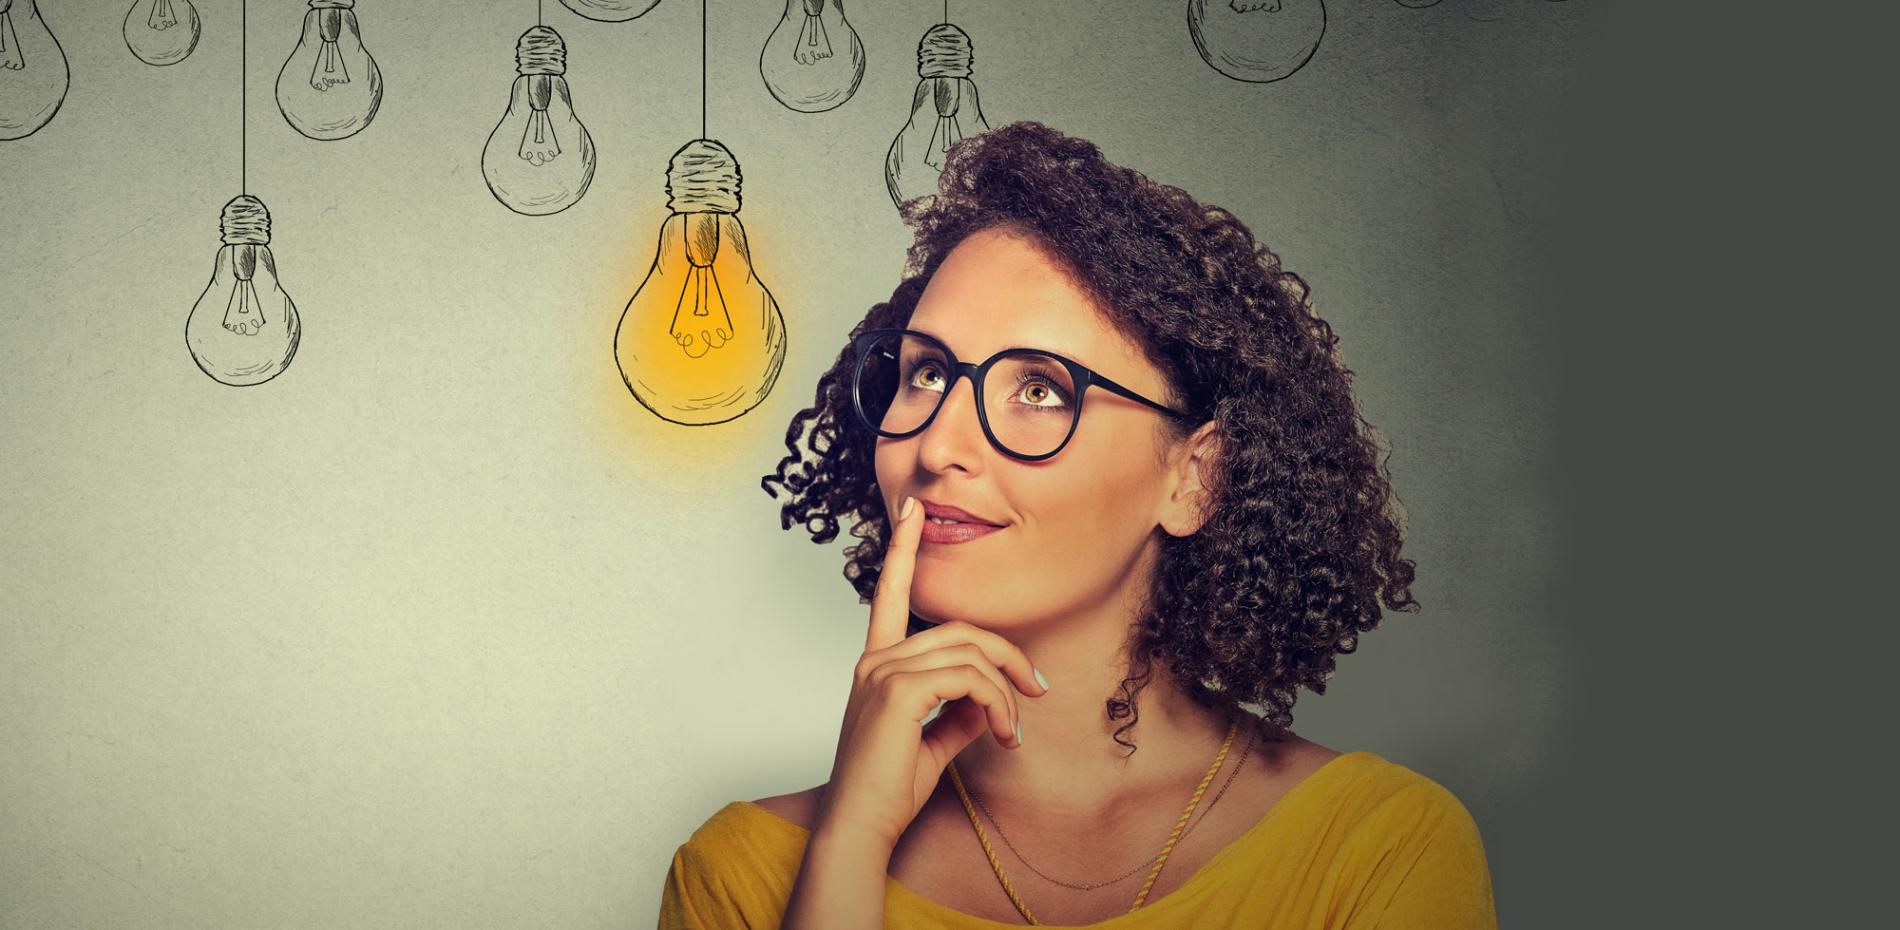 Woman looking inspired with light bulbs in background